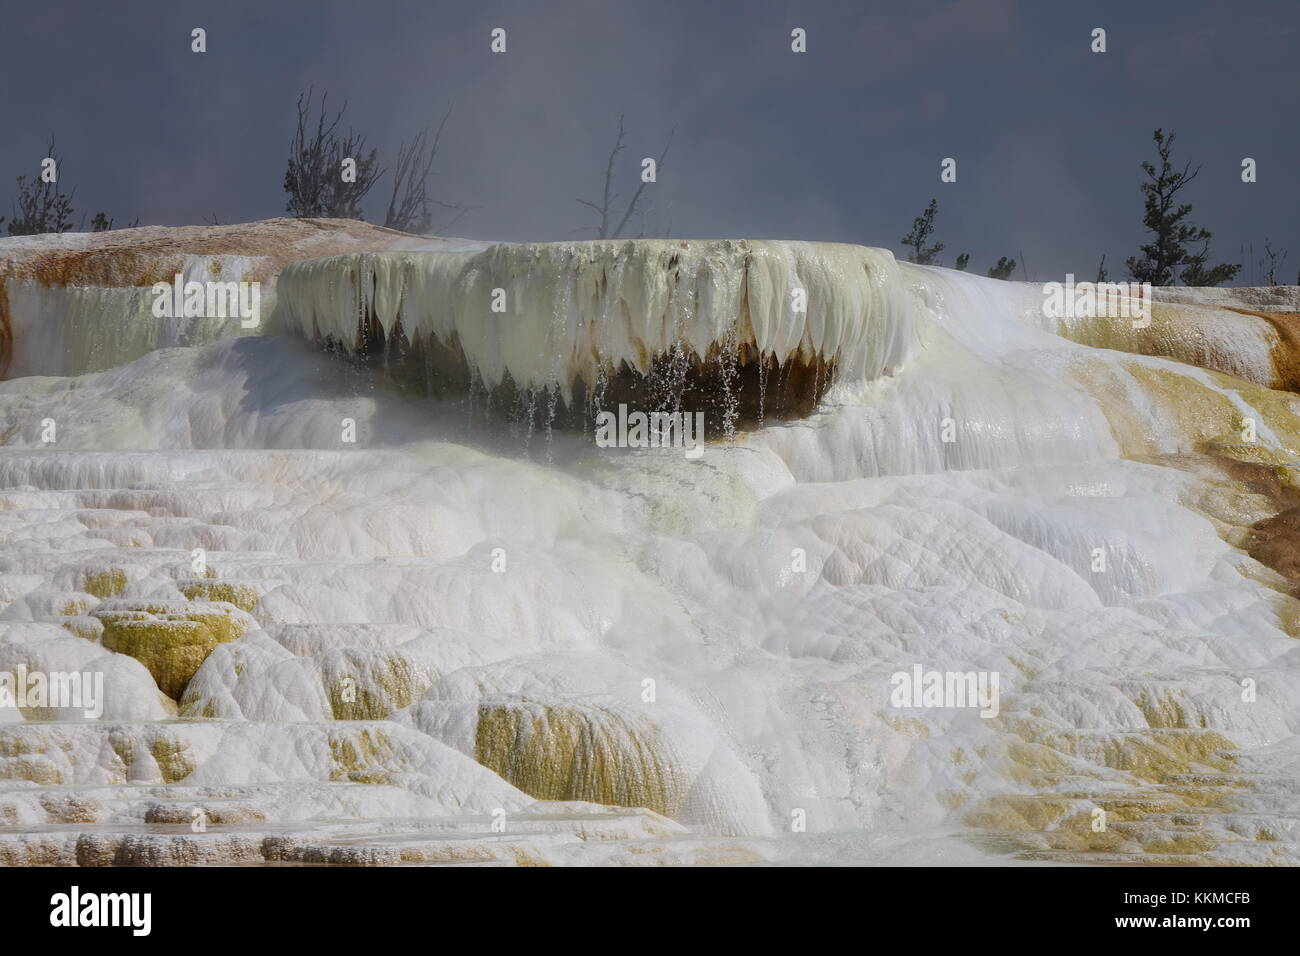 Mammoth Hot Springs, Yellowstone National Park - Stock Image